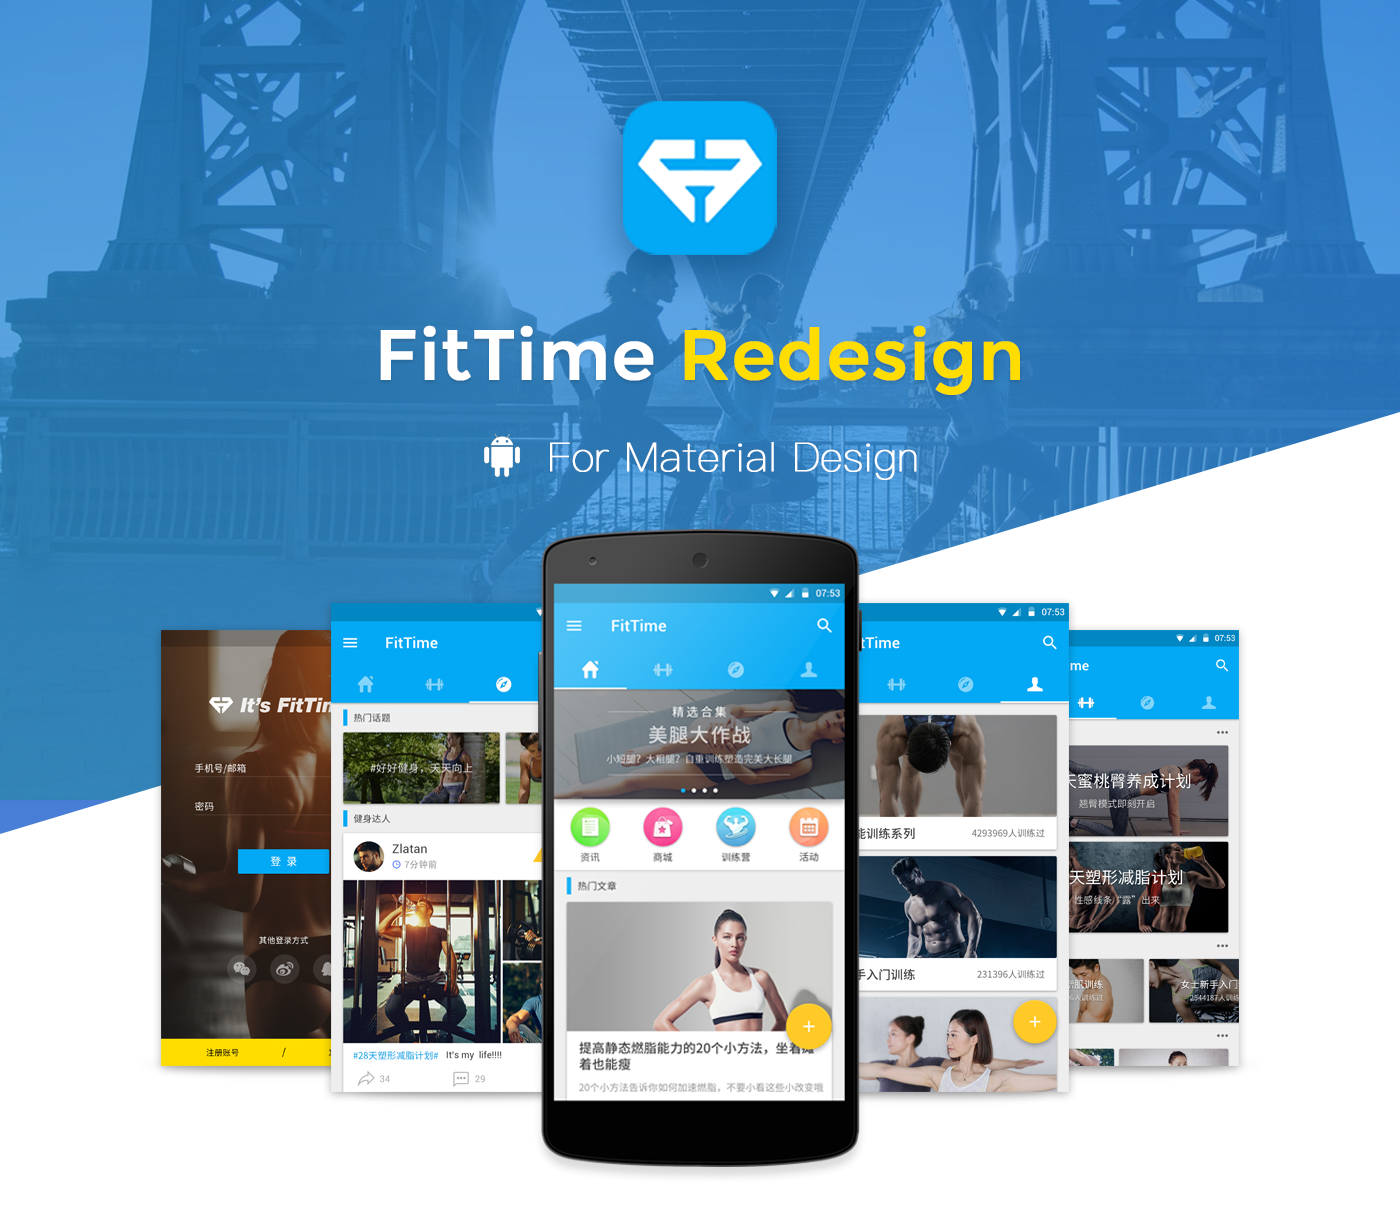 FitTime Redesign for Material design